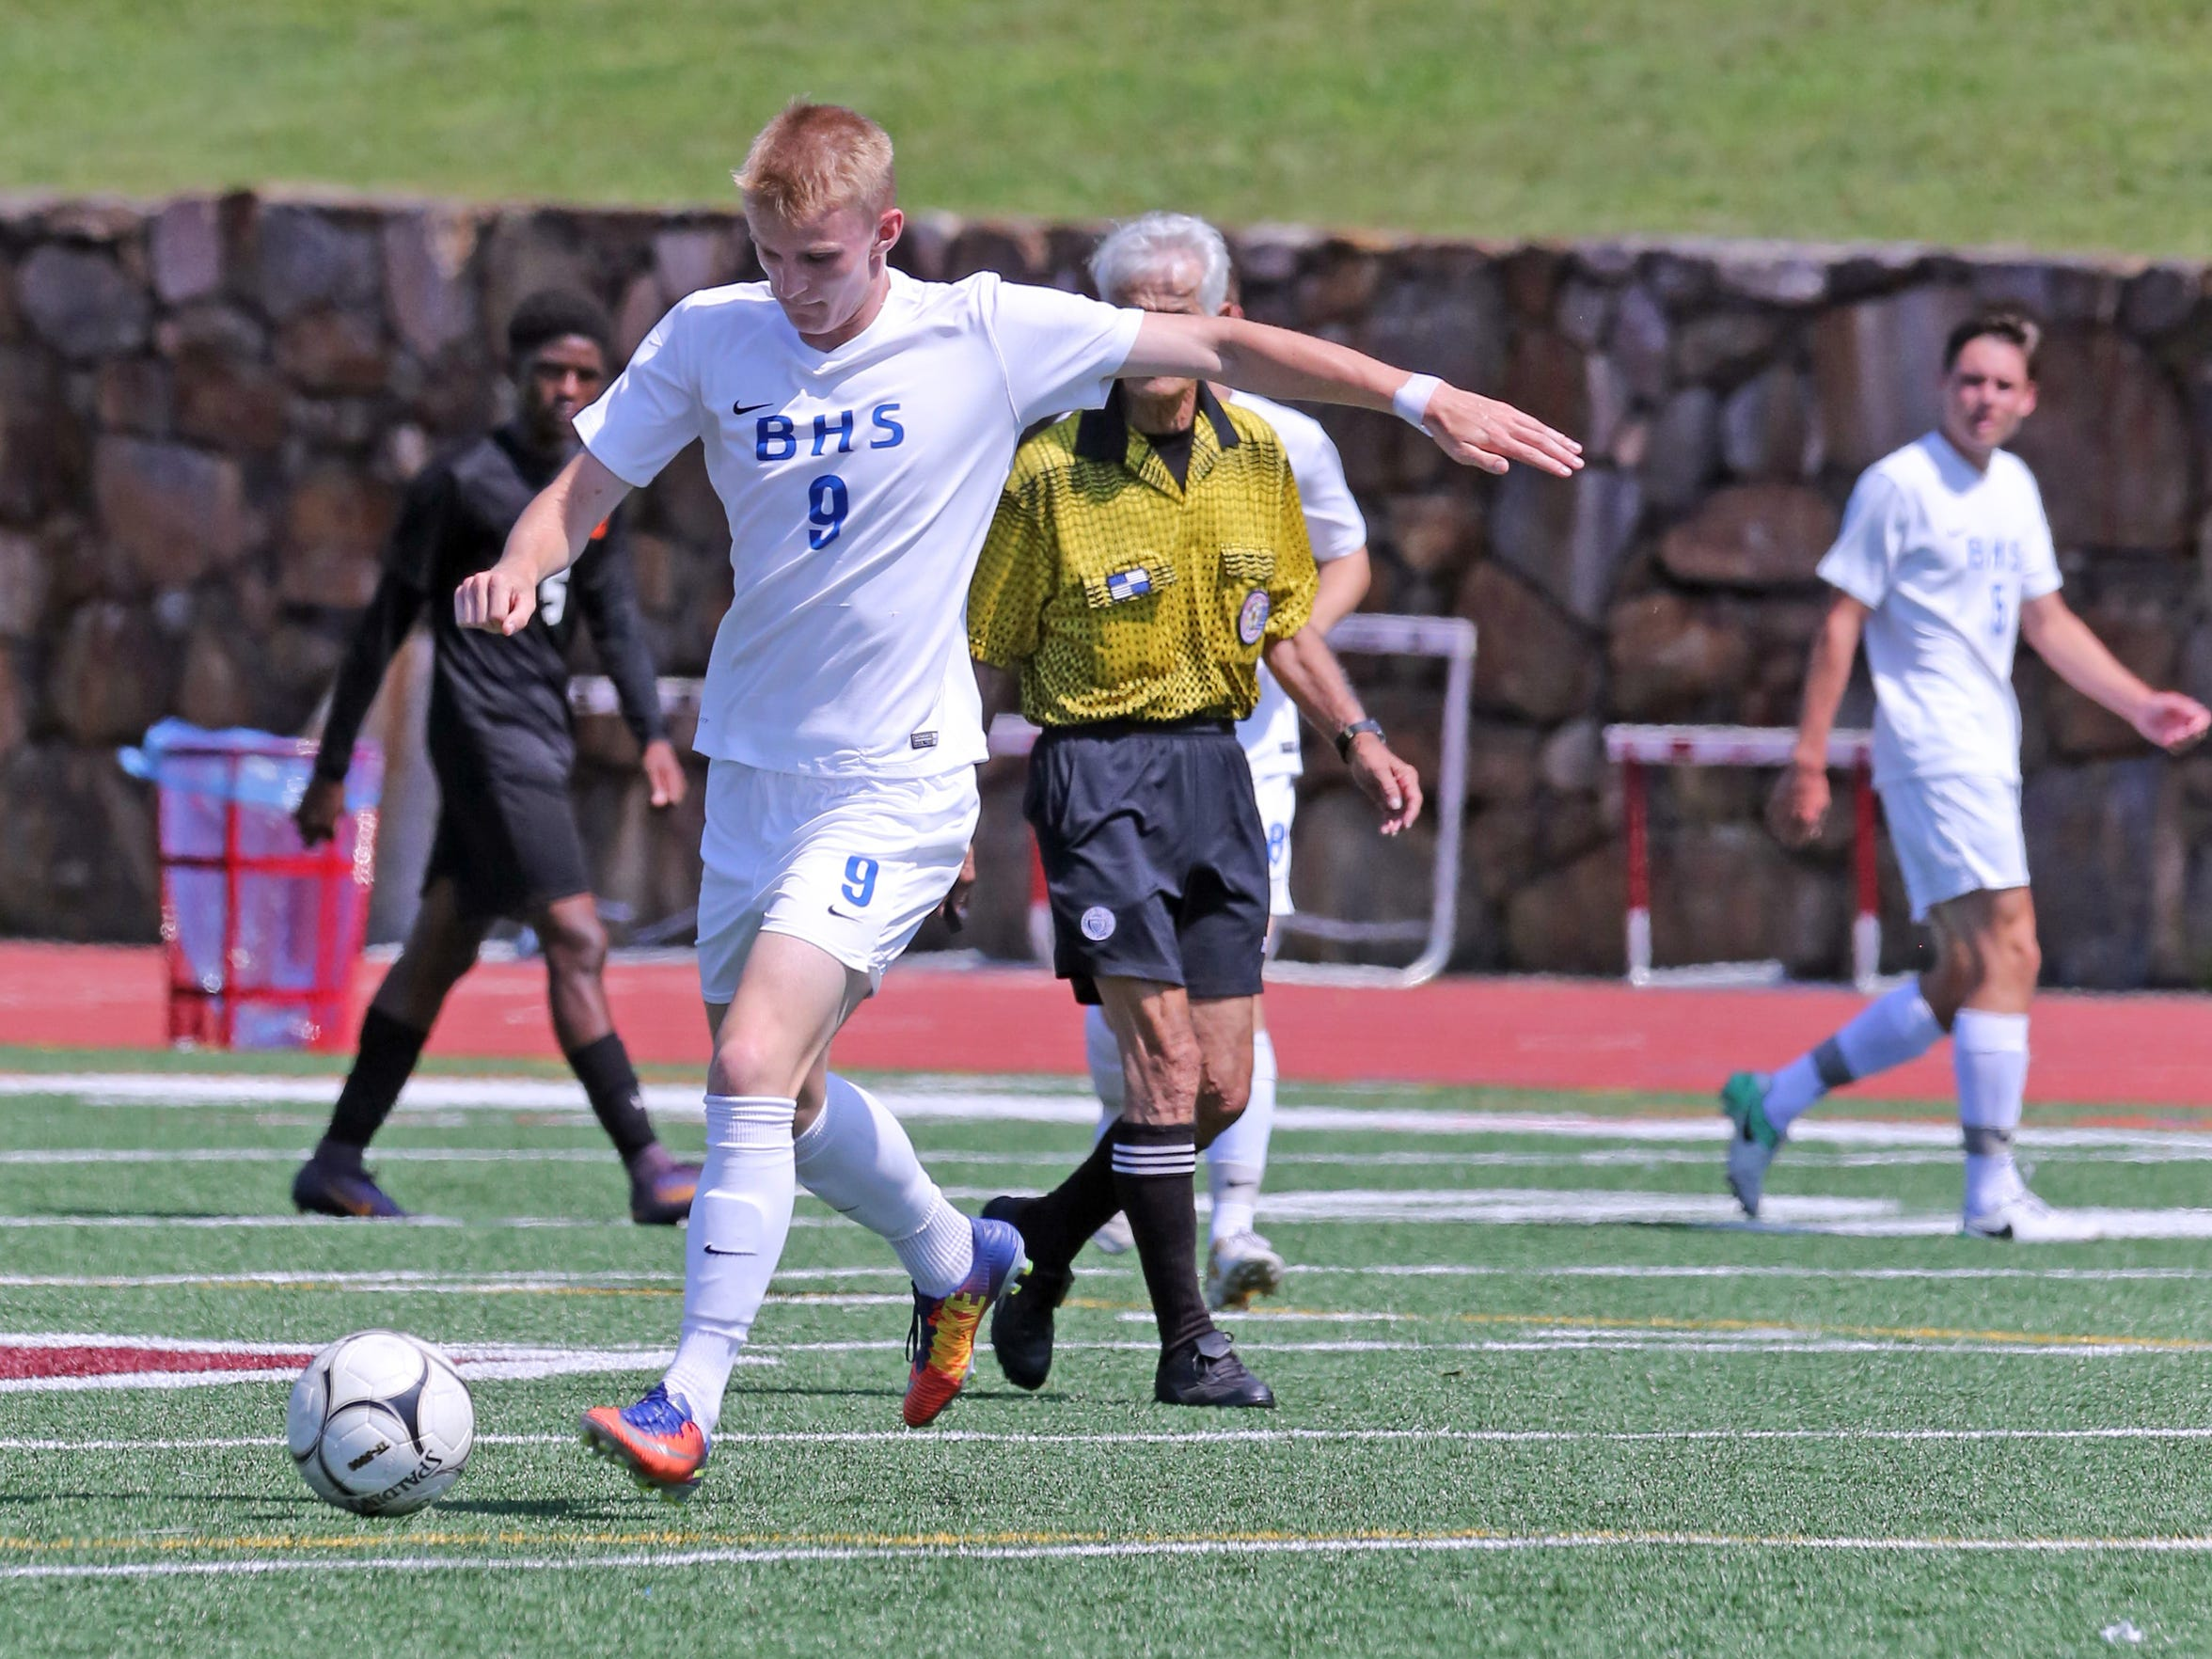 Bronxville's Jeb Burnell kicks the ball in a game against